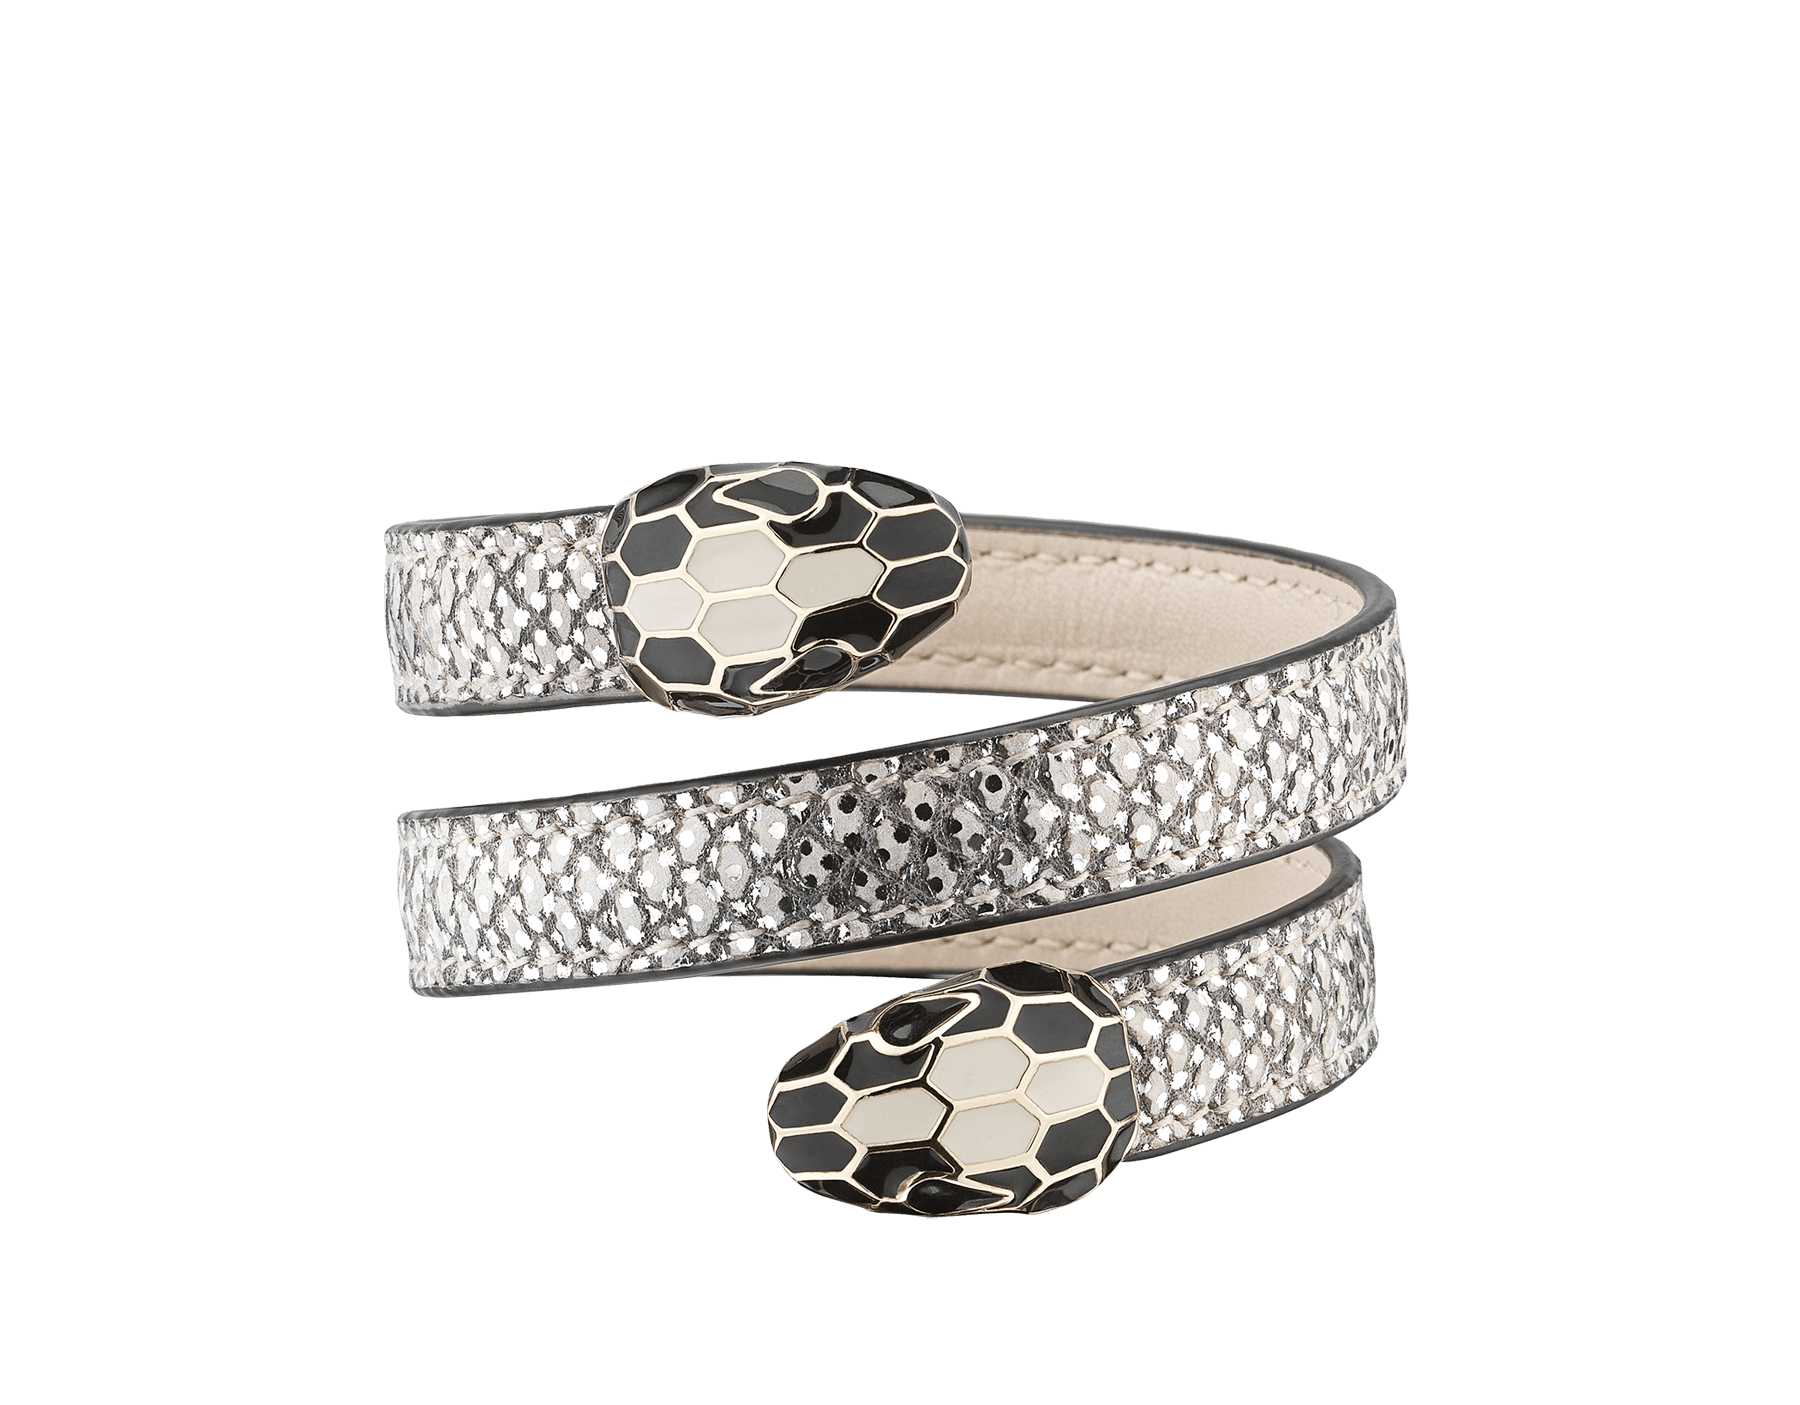 Serpenti Forever multi-coiled rigid Cleopatra bracelet in white agate metallic karung skin, with light gold brass plated hardware. Iconic double snakehead décor in black and white agate enamel, with black enamel eyes. Cleopatra-MK-WA image 1